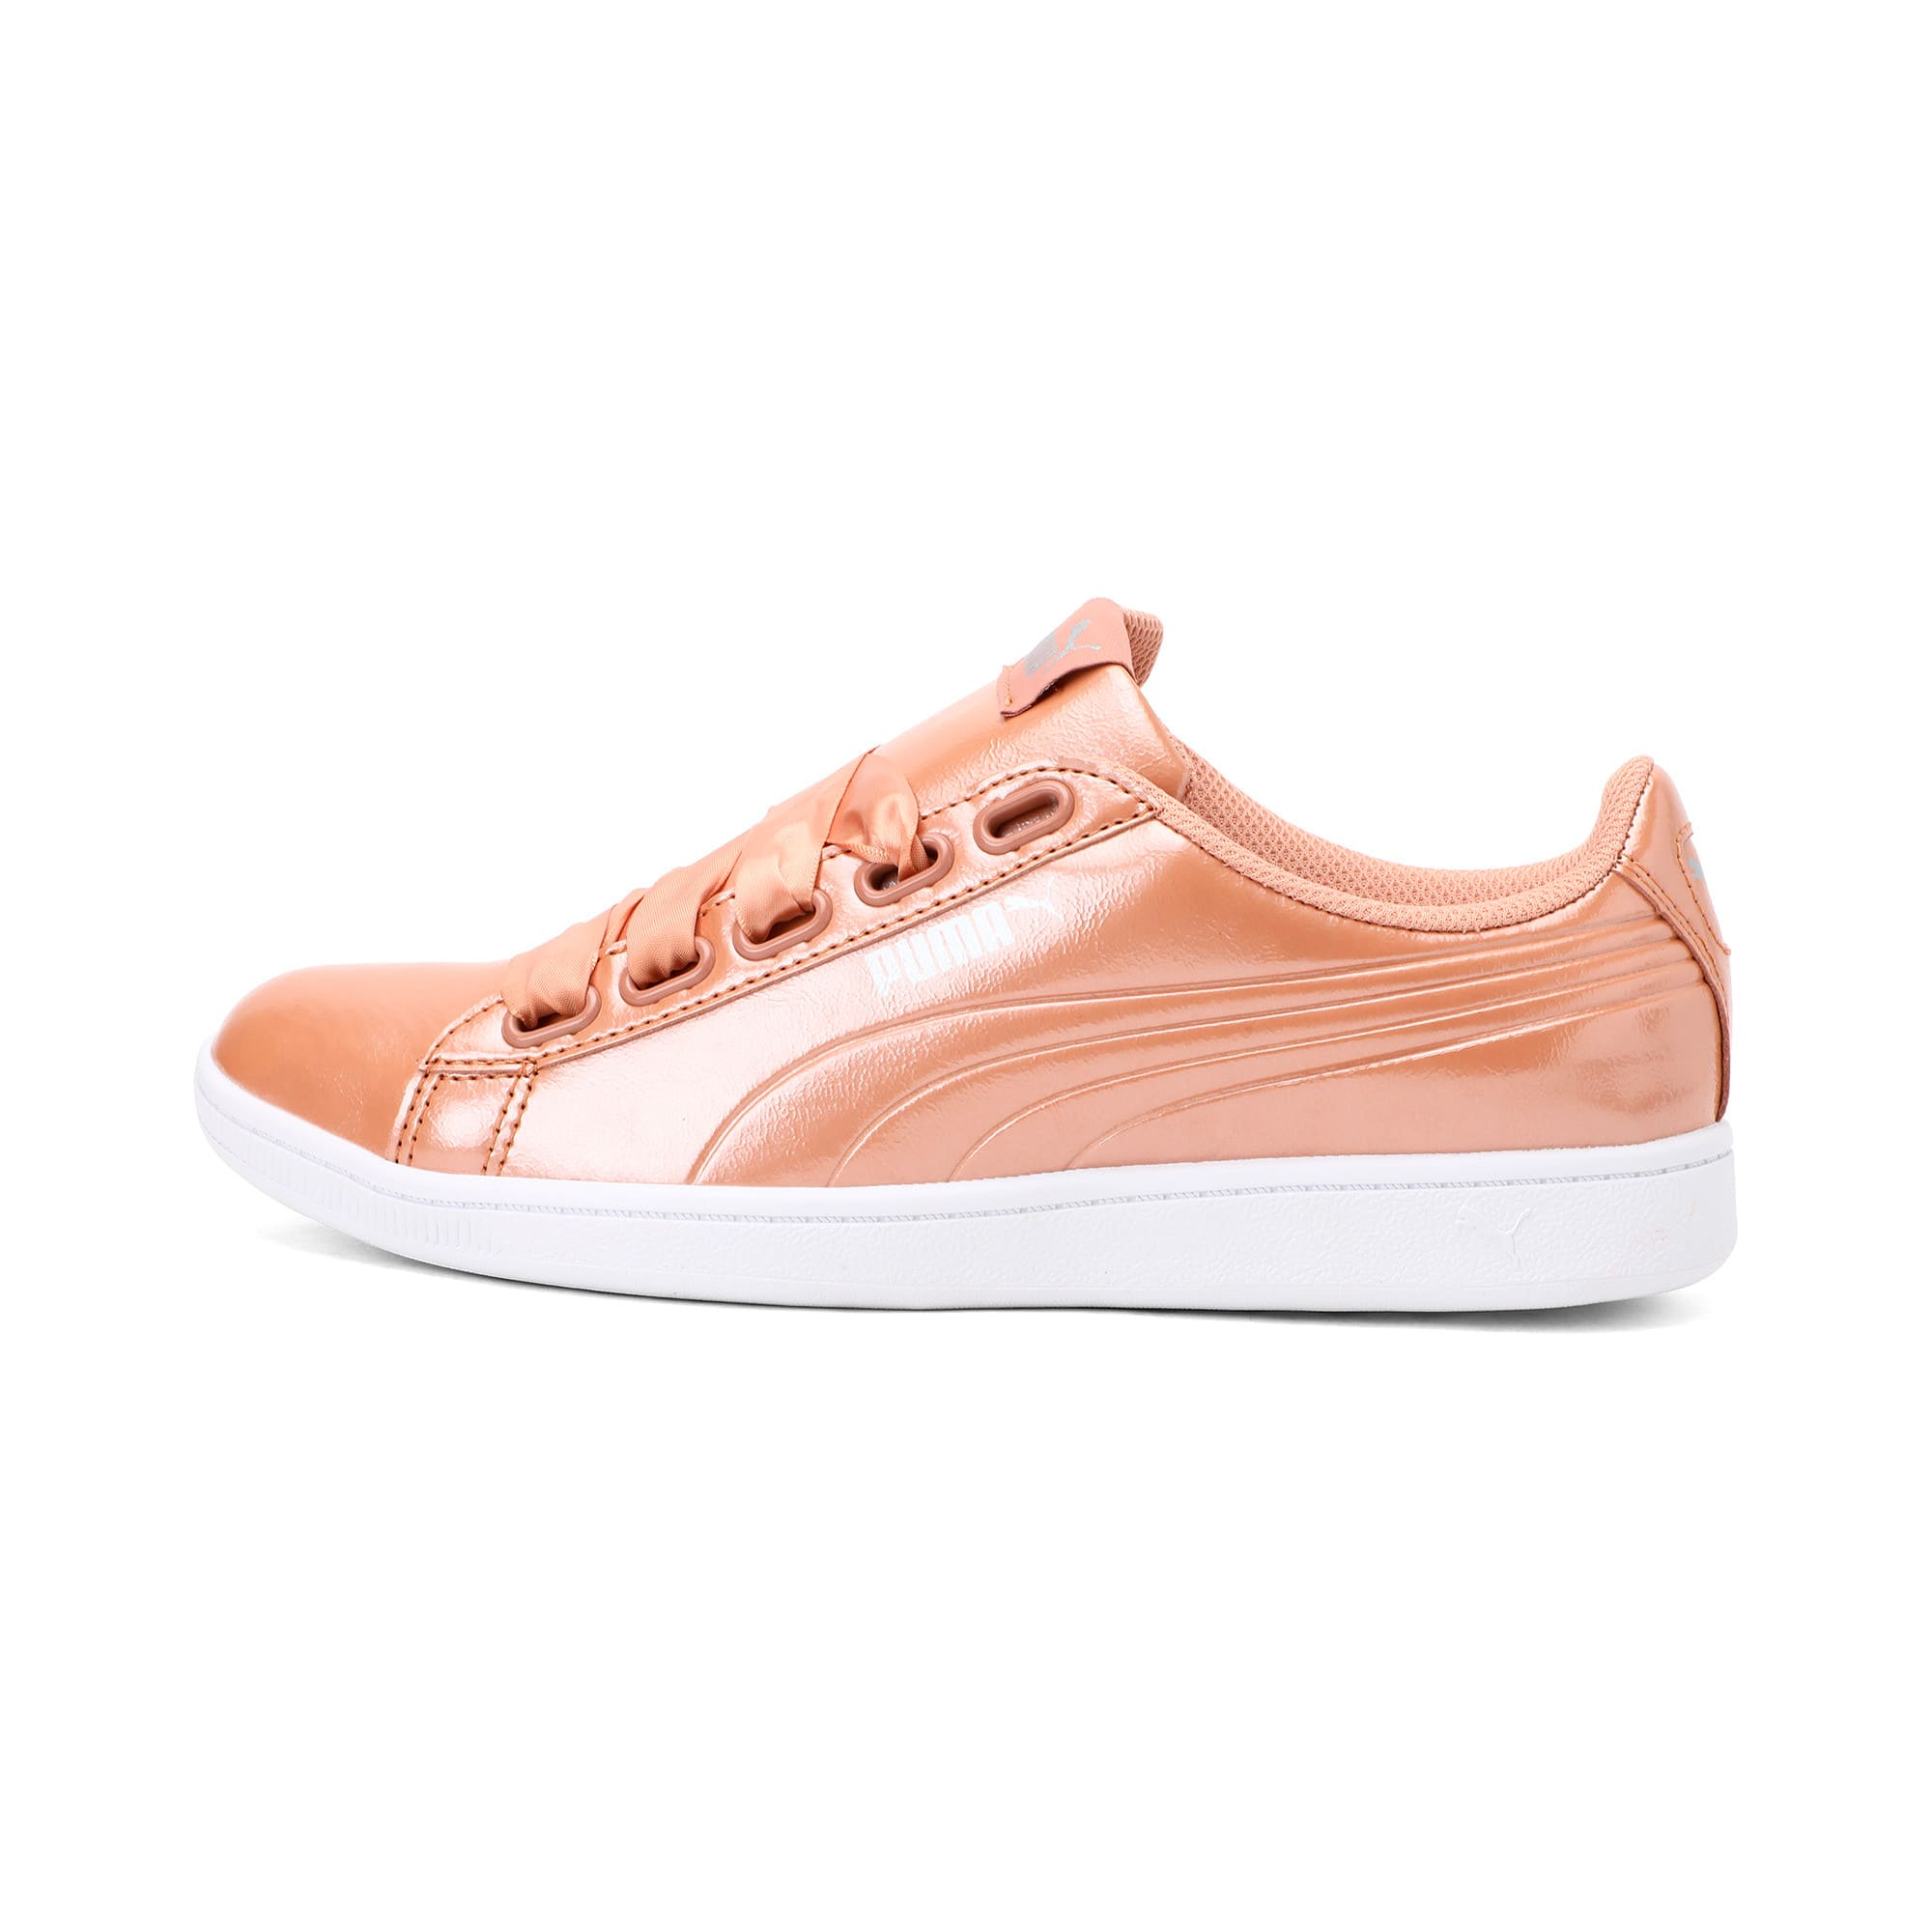 Thumbnail 1 of Vikky Ribbon Patent Women's Trainers, Dusty Coral-Dusty Coral, medium-IND